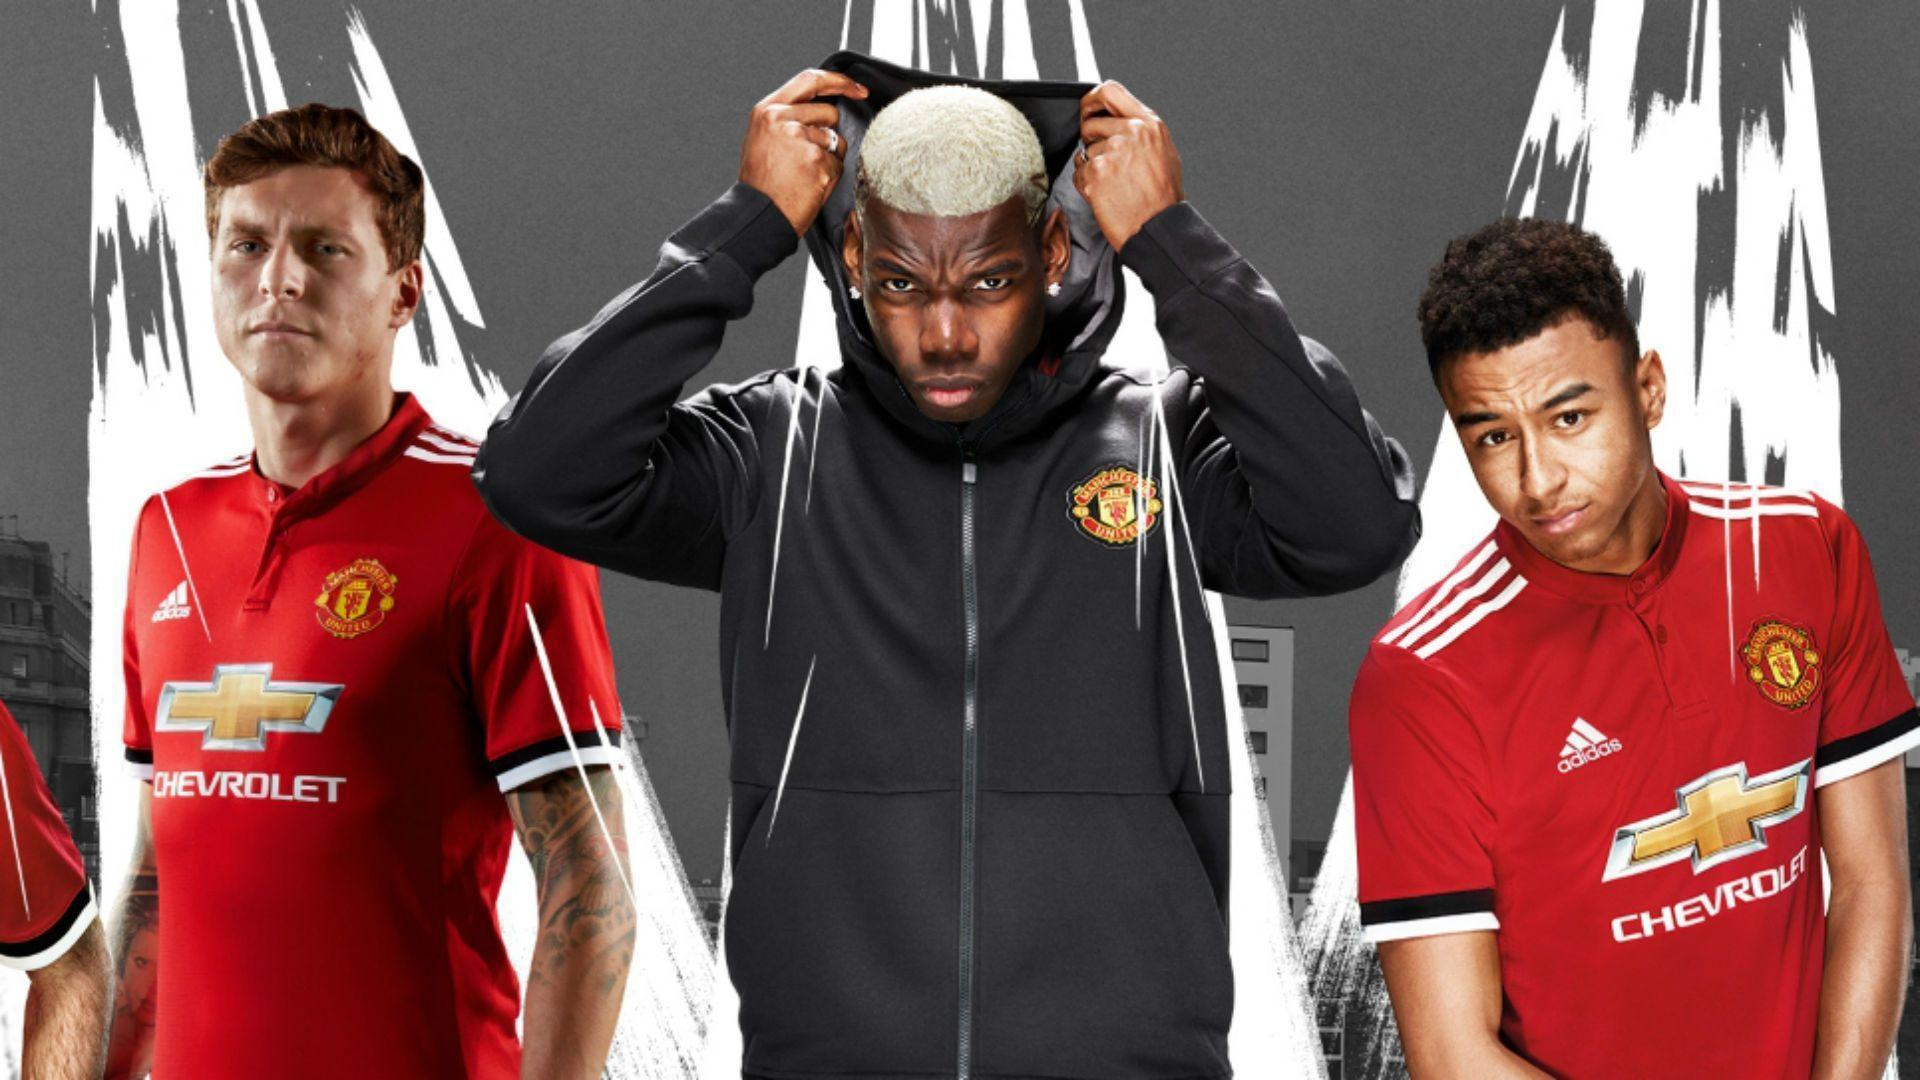 Manchester United Players 2017 Wallpapers Wallpaper Cave